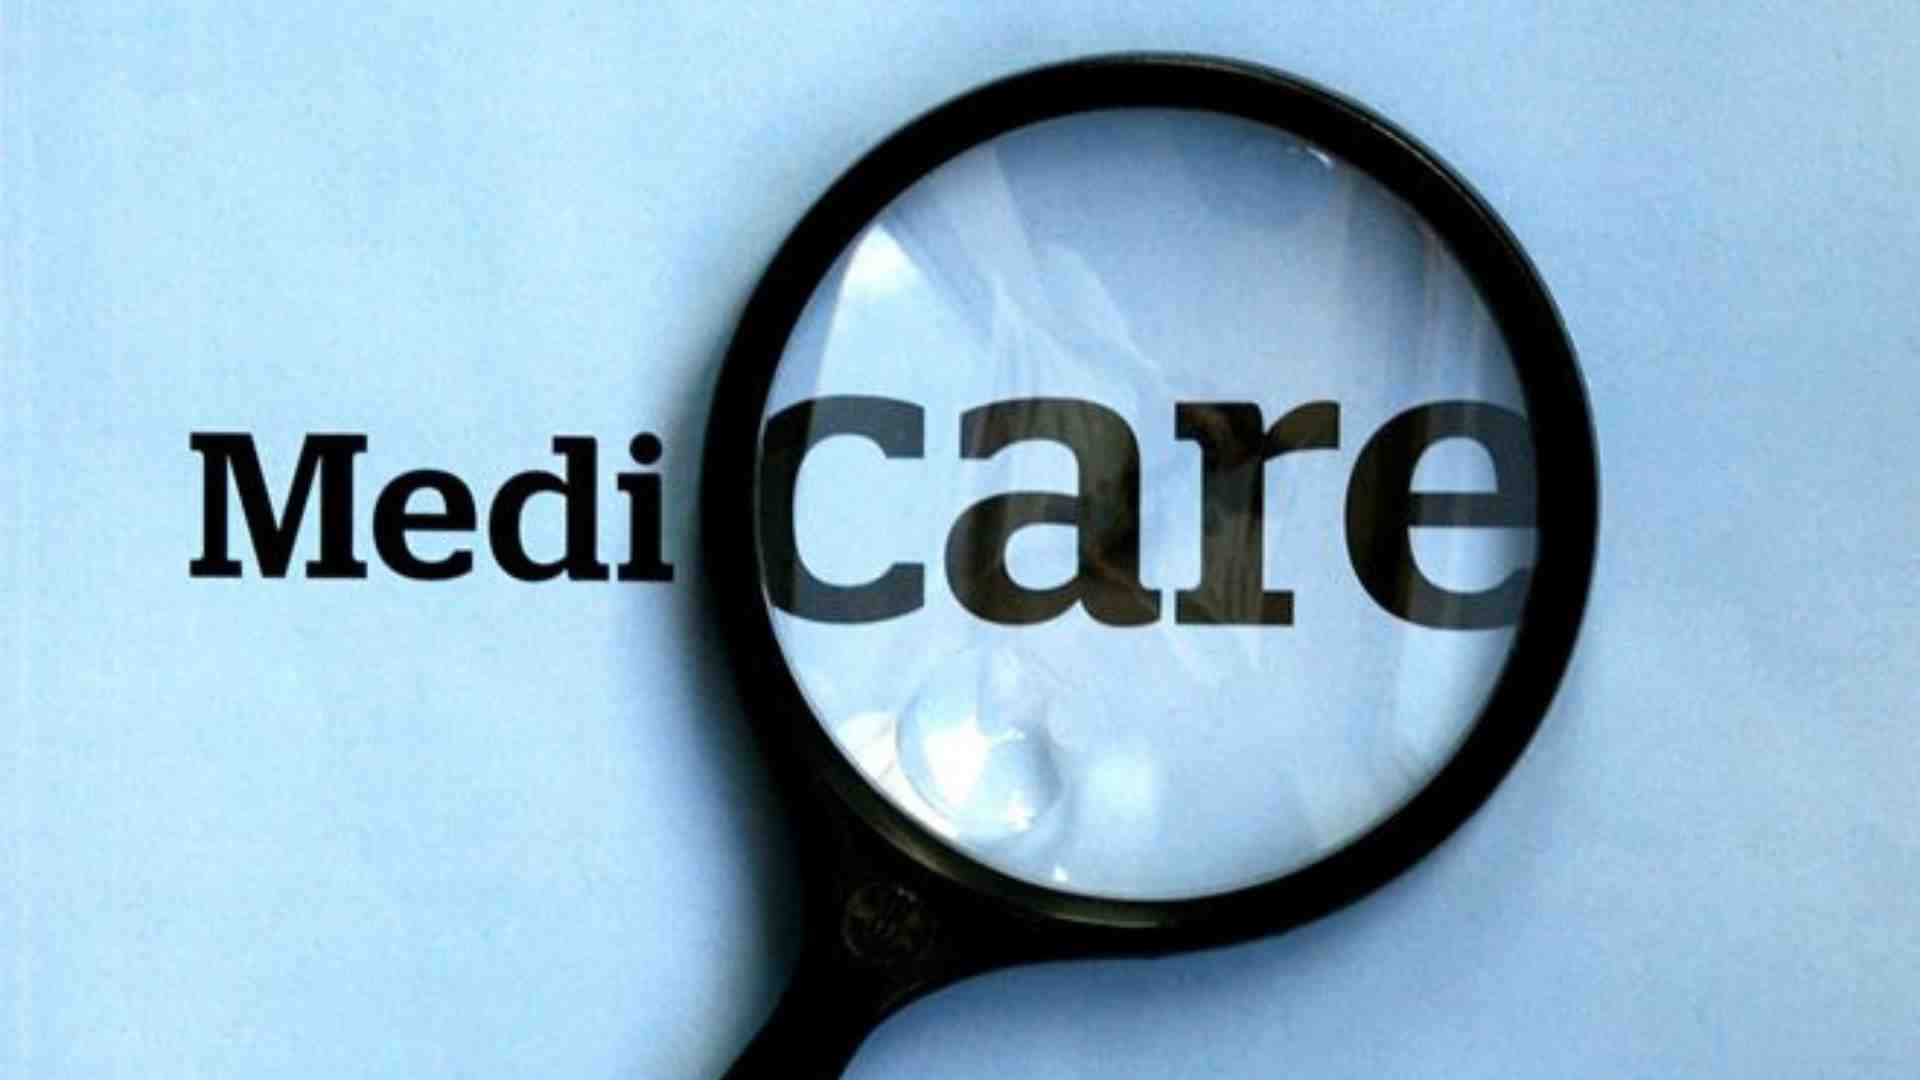 New Policy Changes Make Medicare More Caregiver Friendly